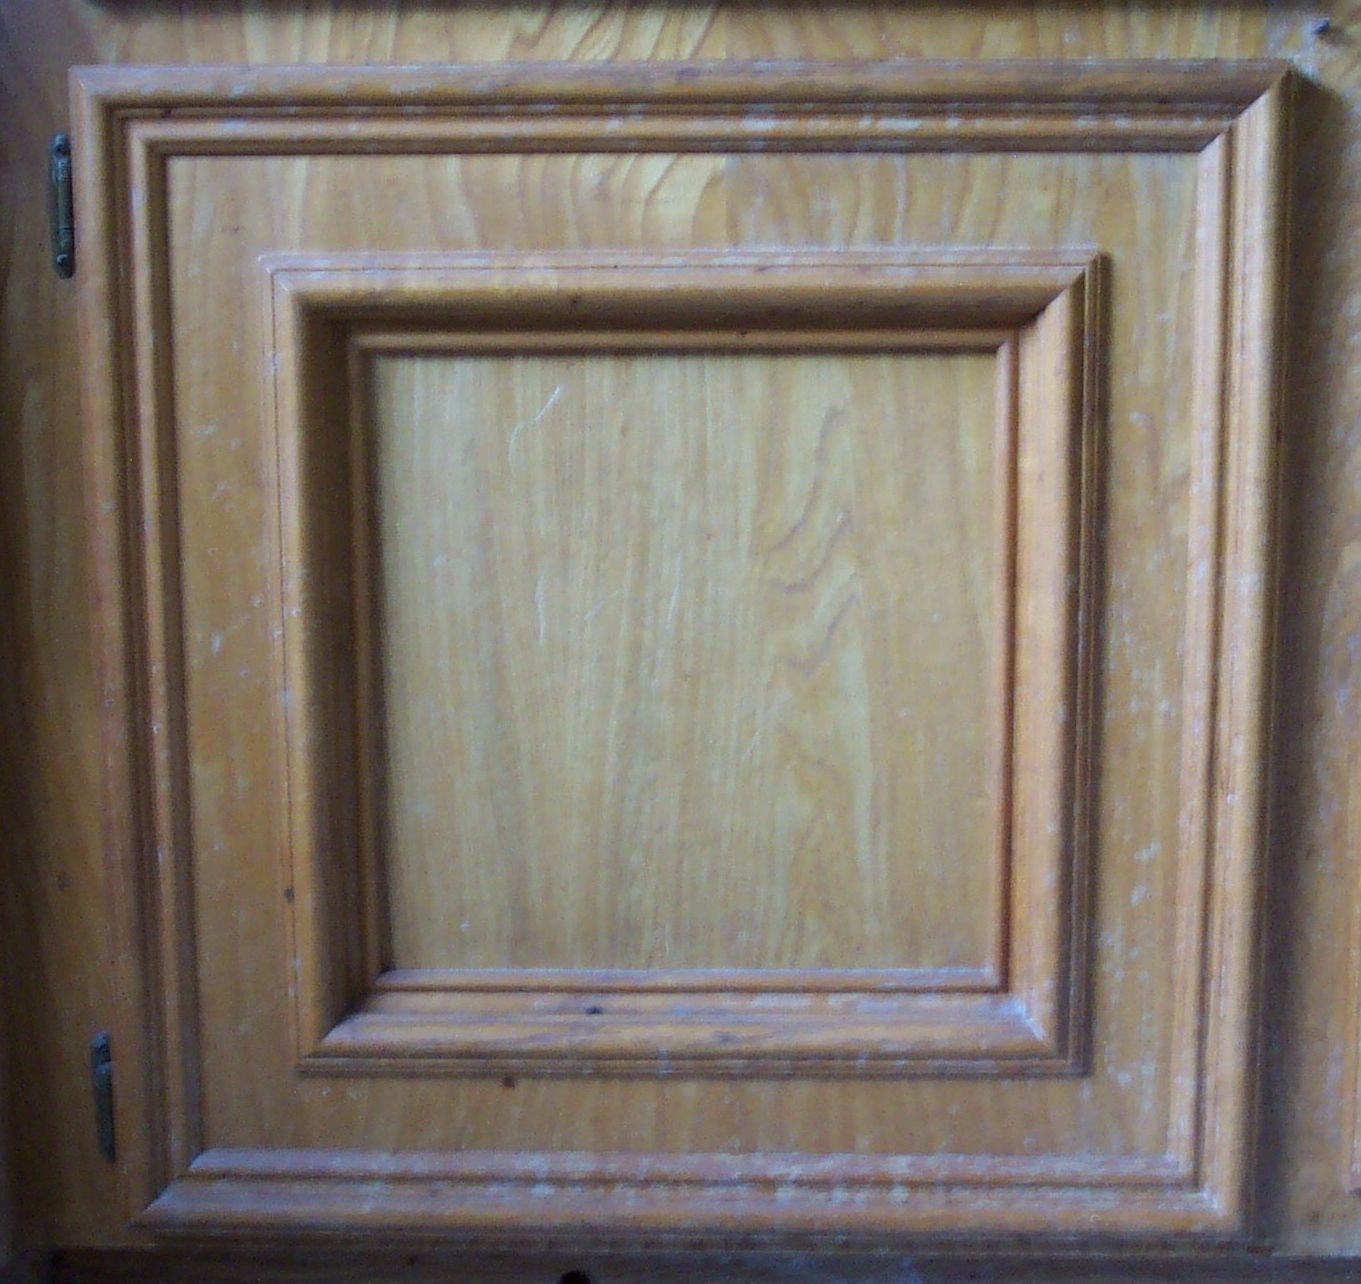 Trim For Cabinets Adding Trim To Existing Plain Kitchen Cabinet Doors This Is My